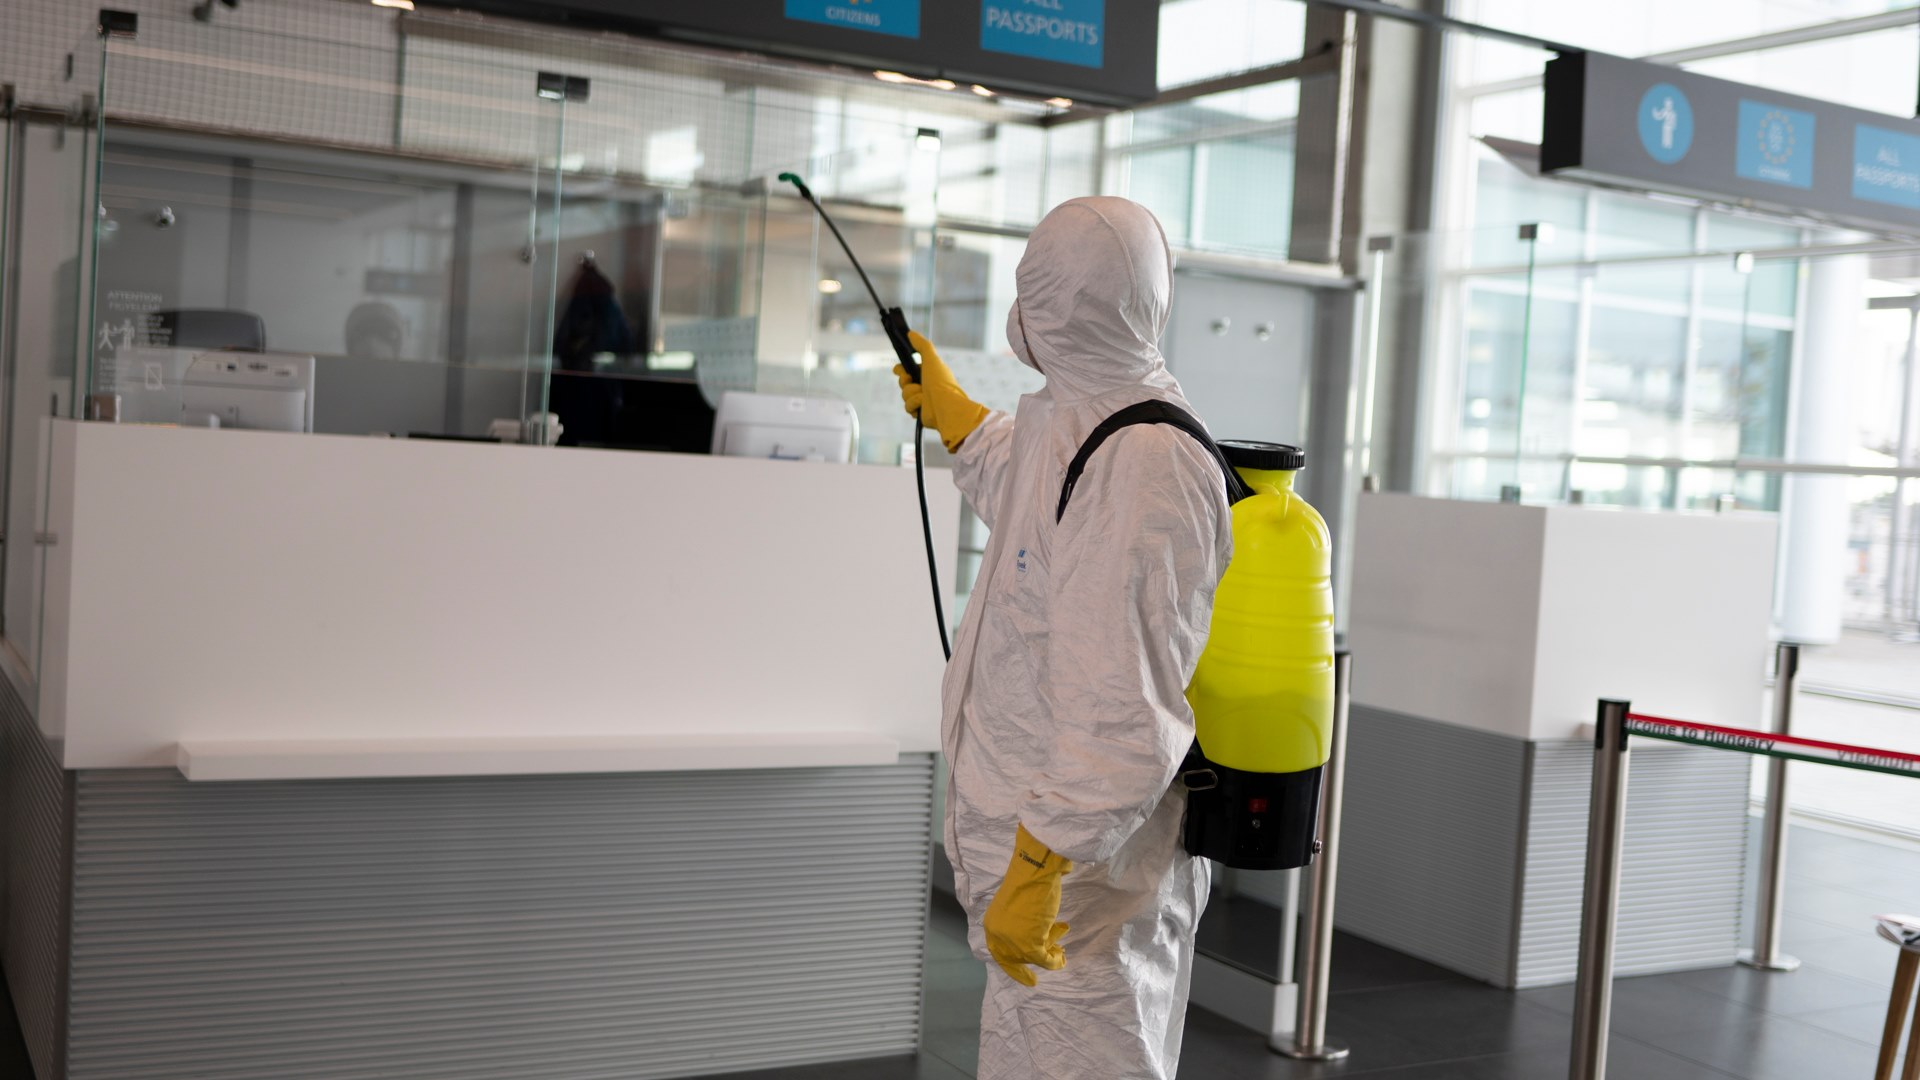 Gov't Blocked Crucial Loan for Budapest Airport amid Coronavirus Traffic Downhill in Spring